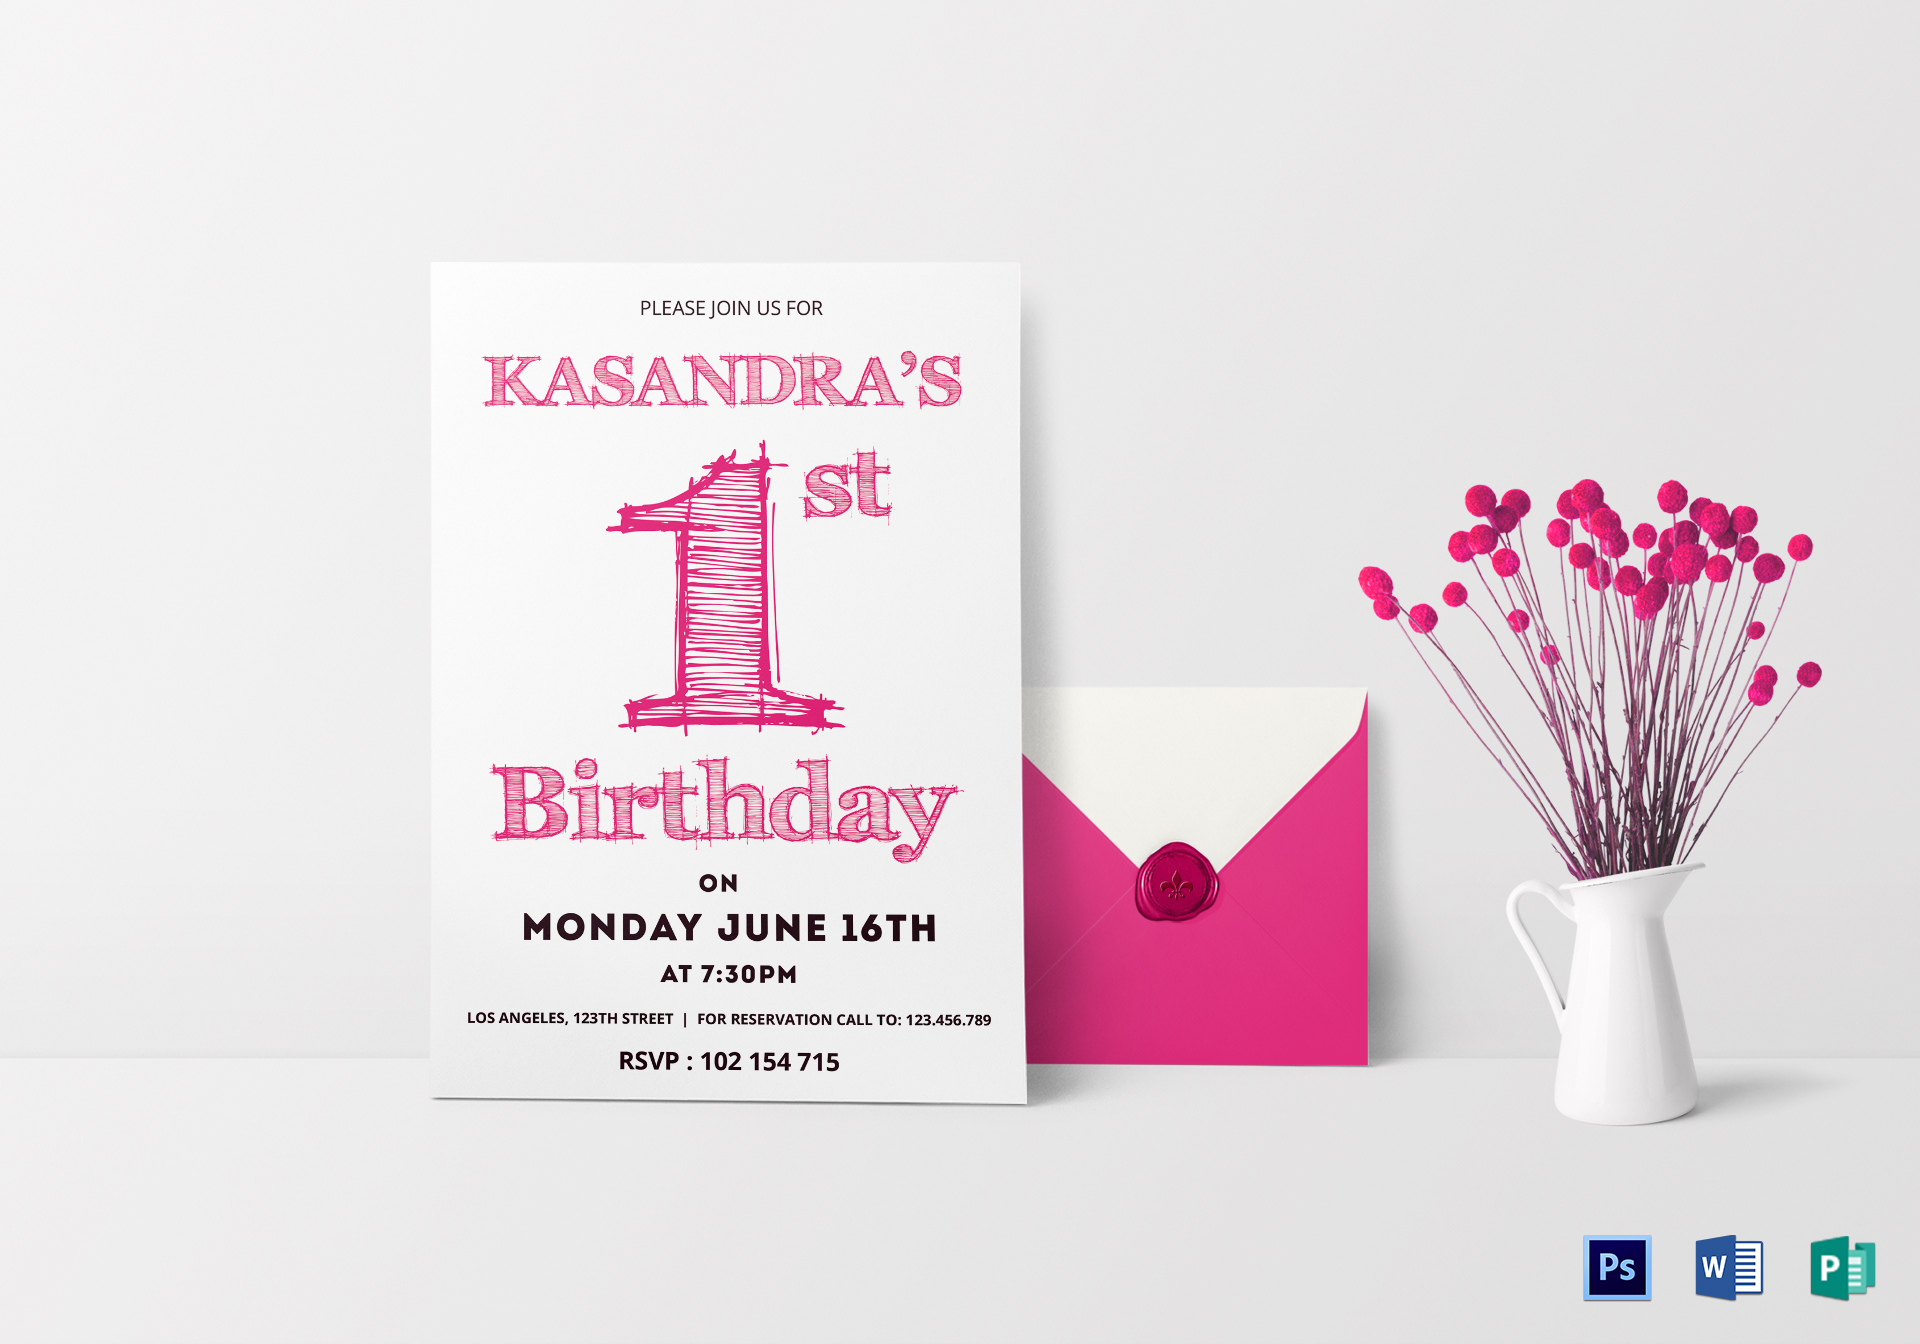 1st Birthday Party Invitation Card Design Template In Word PSD